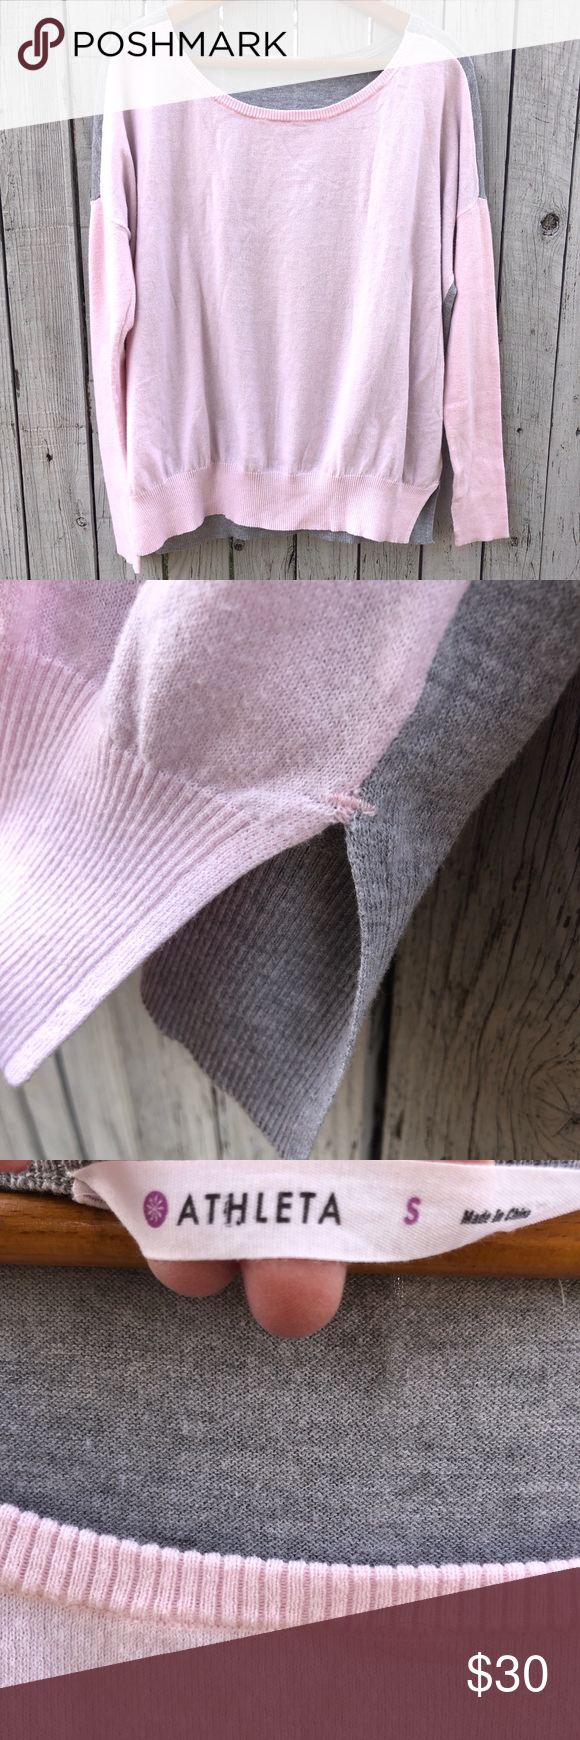 Athleta twotoned sweater EUC! Twotoned, pink in front